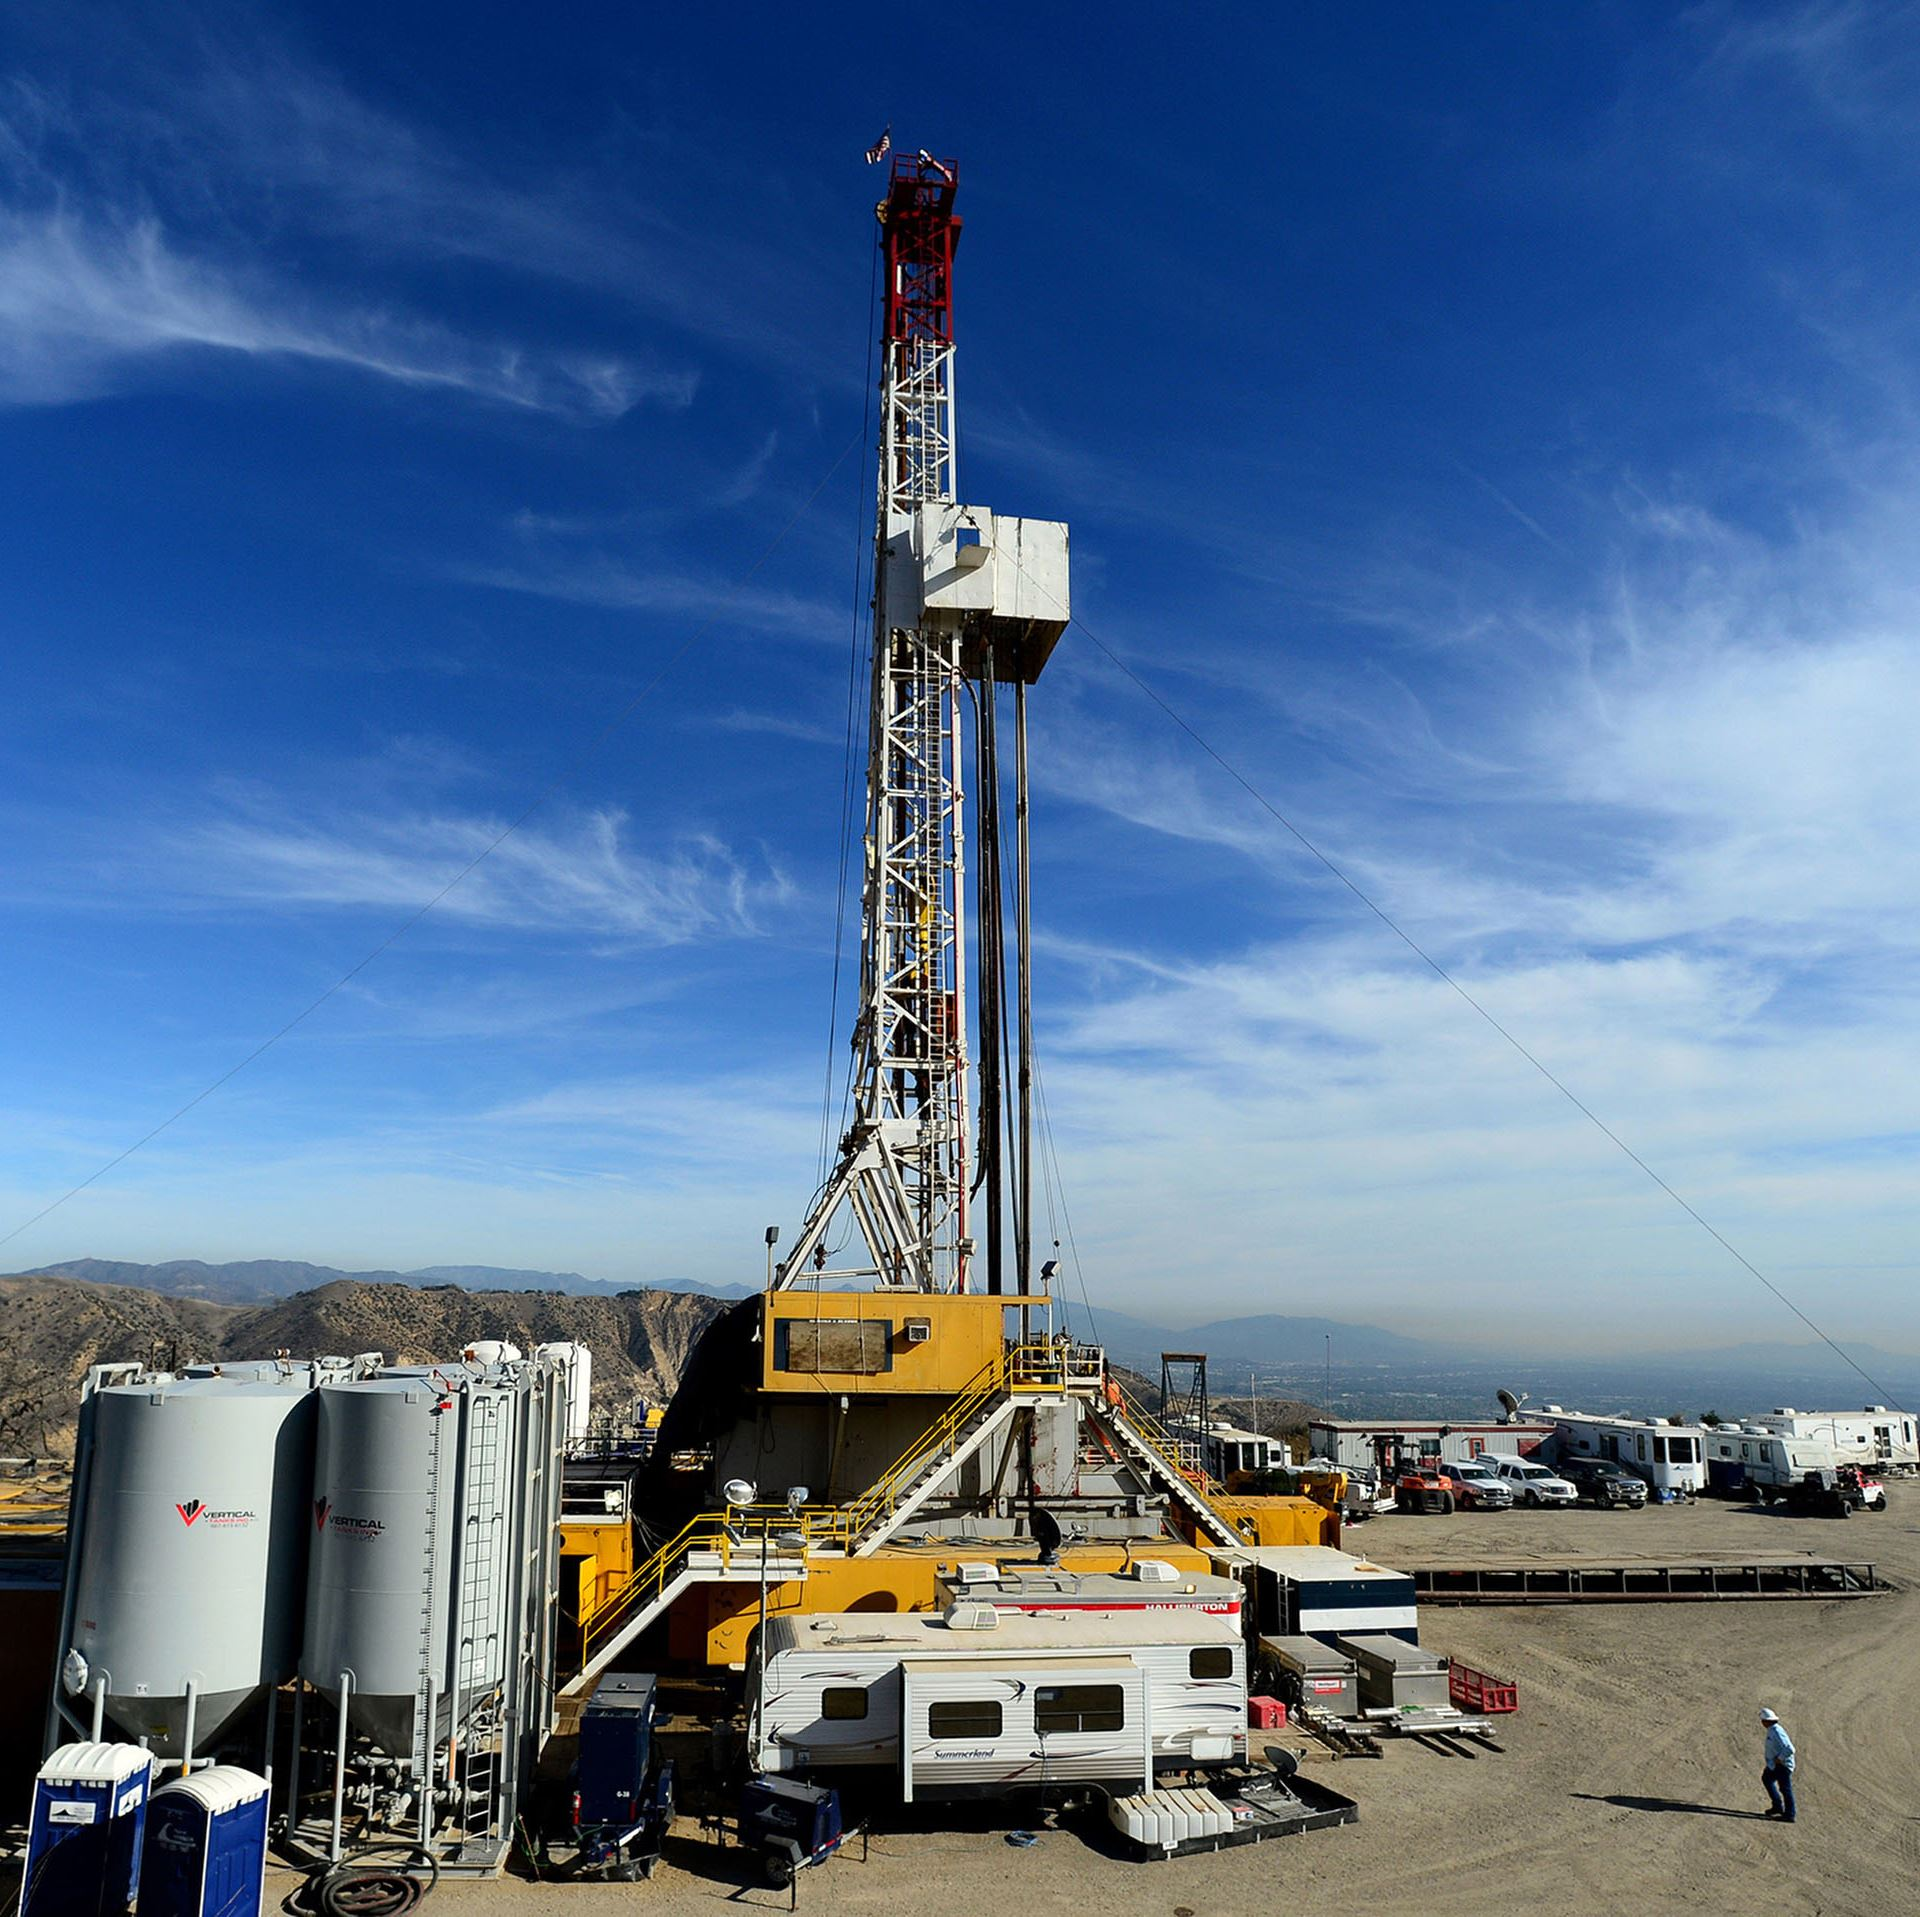 California Gas Leak-1 Acting DEP Secretary Patrick McDonnell offered a detailed justification of the proposed permits for new shale gas well sites and associated equipment in a letter last Friday to three Republican Senate leaders.